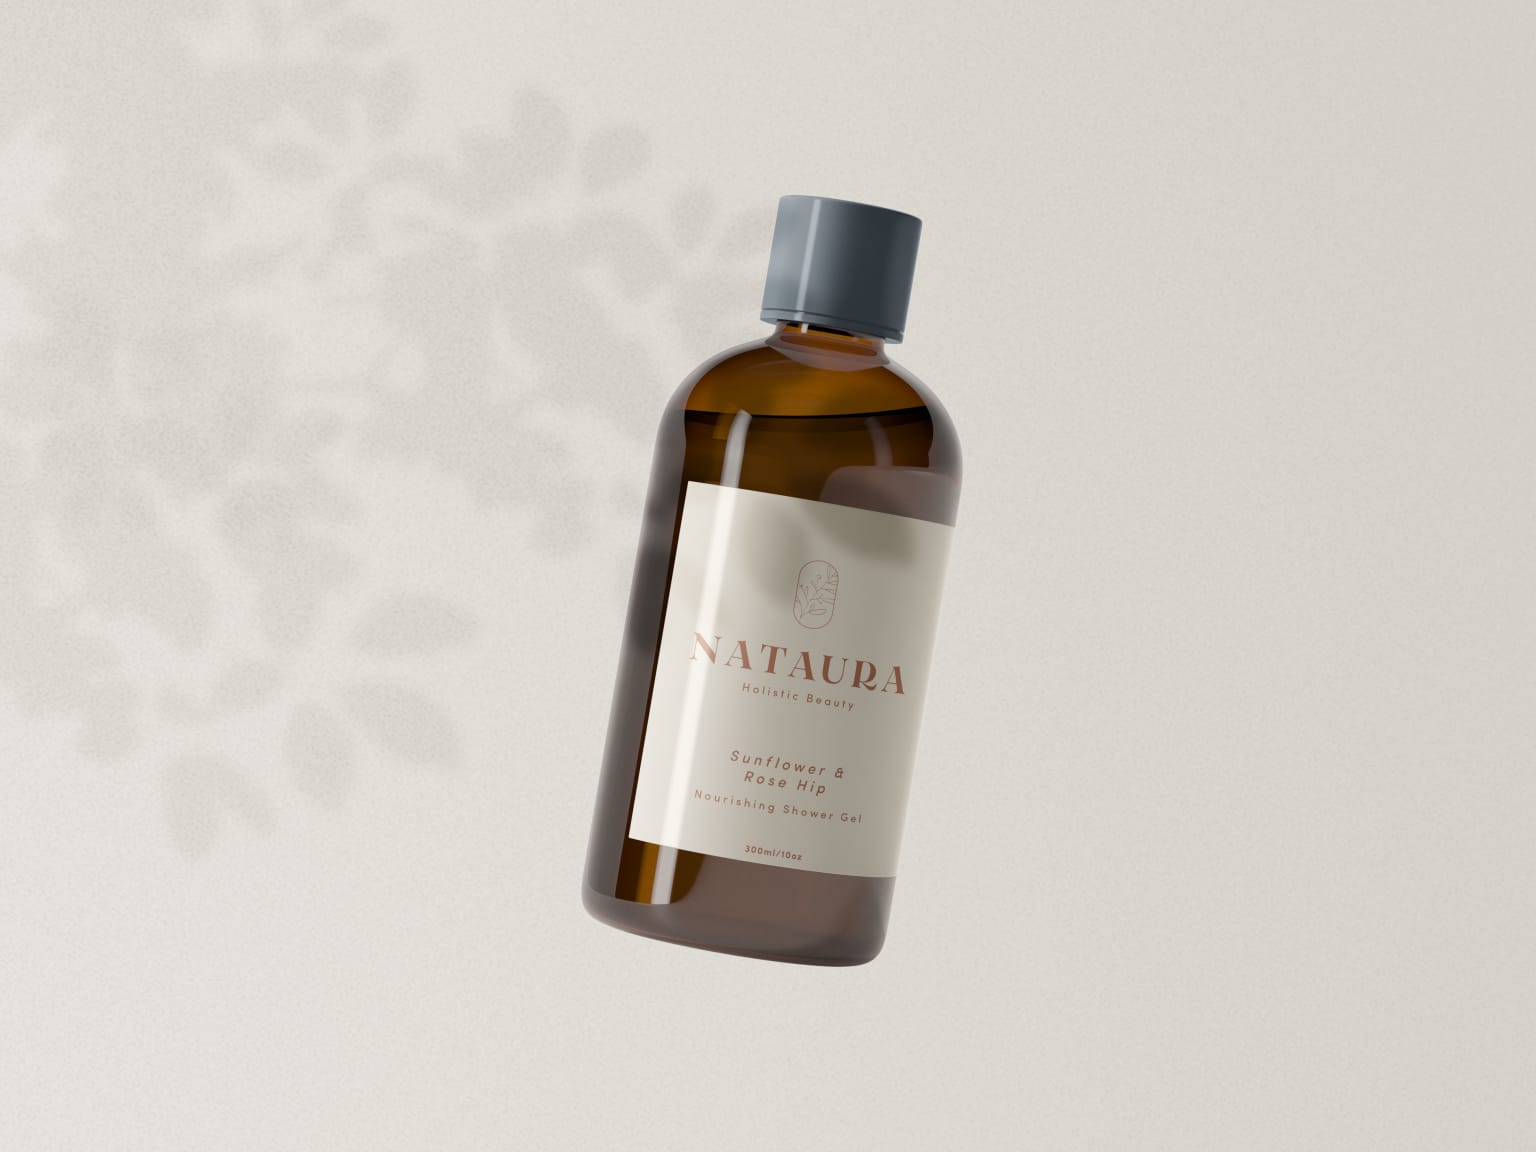 Nataura: Brand Identity, Packaging